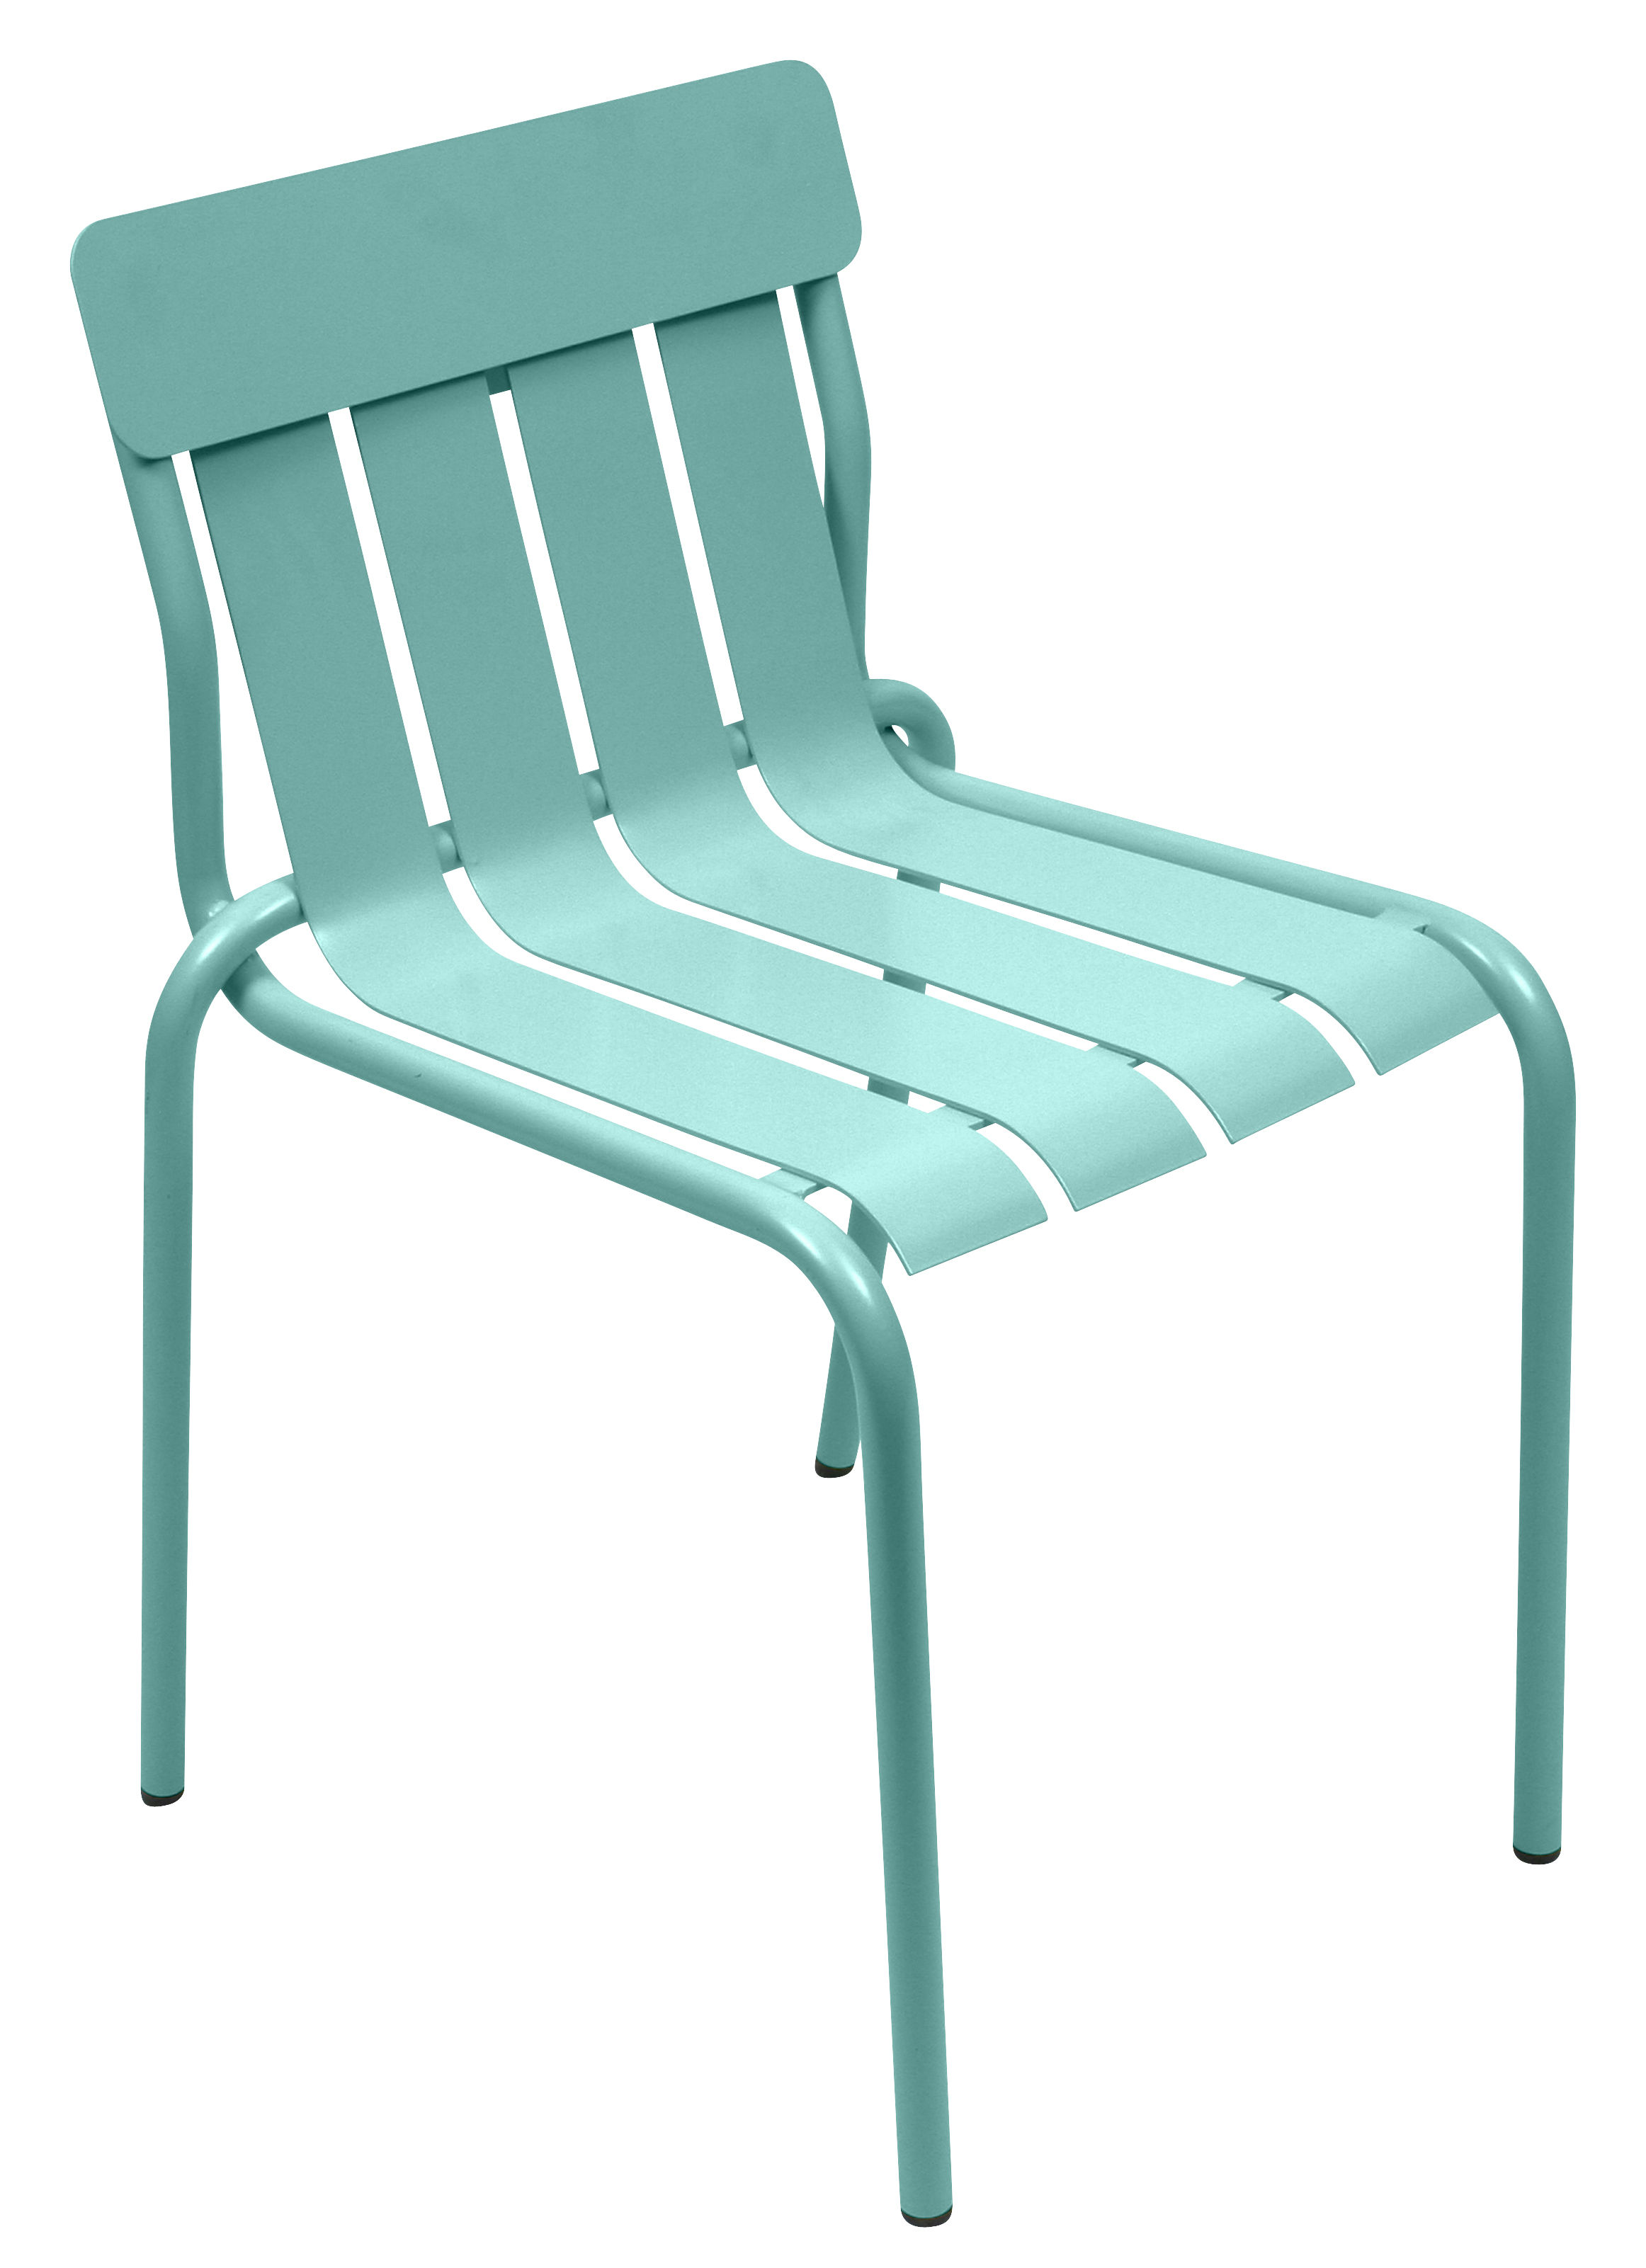 Furniture - Chairs - Stripe Stacking chair - By Matali Crasset by Fermob - Blue Lagoon - Aluminium